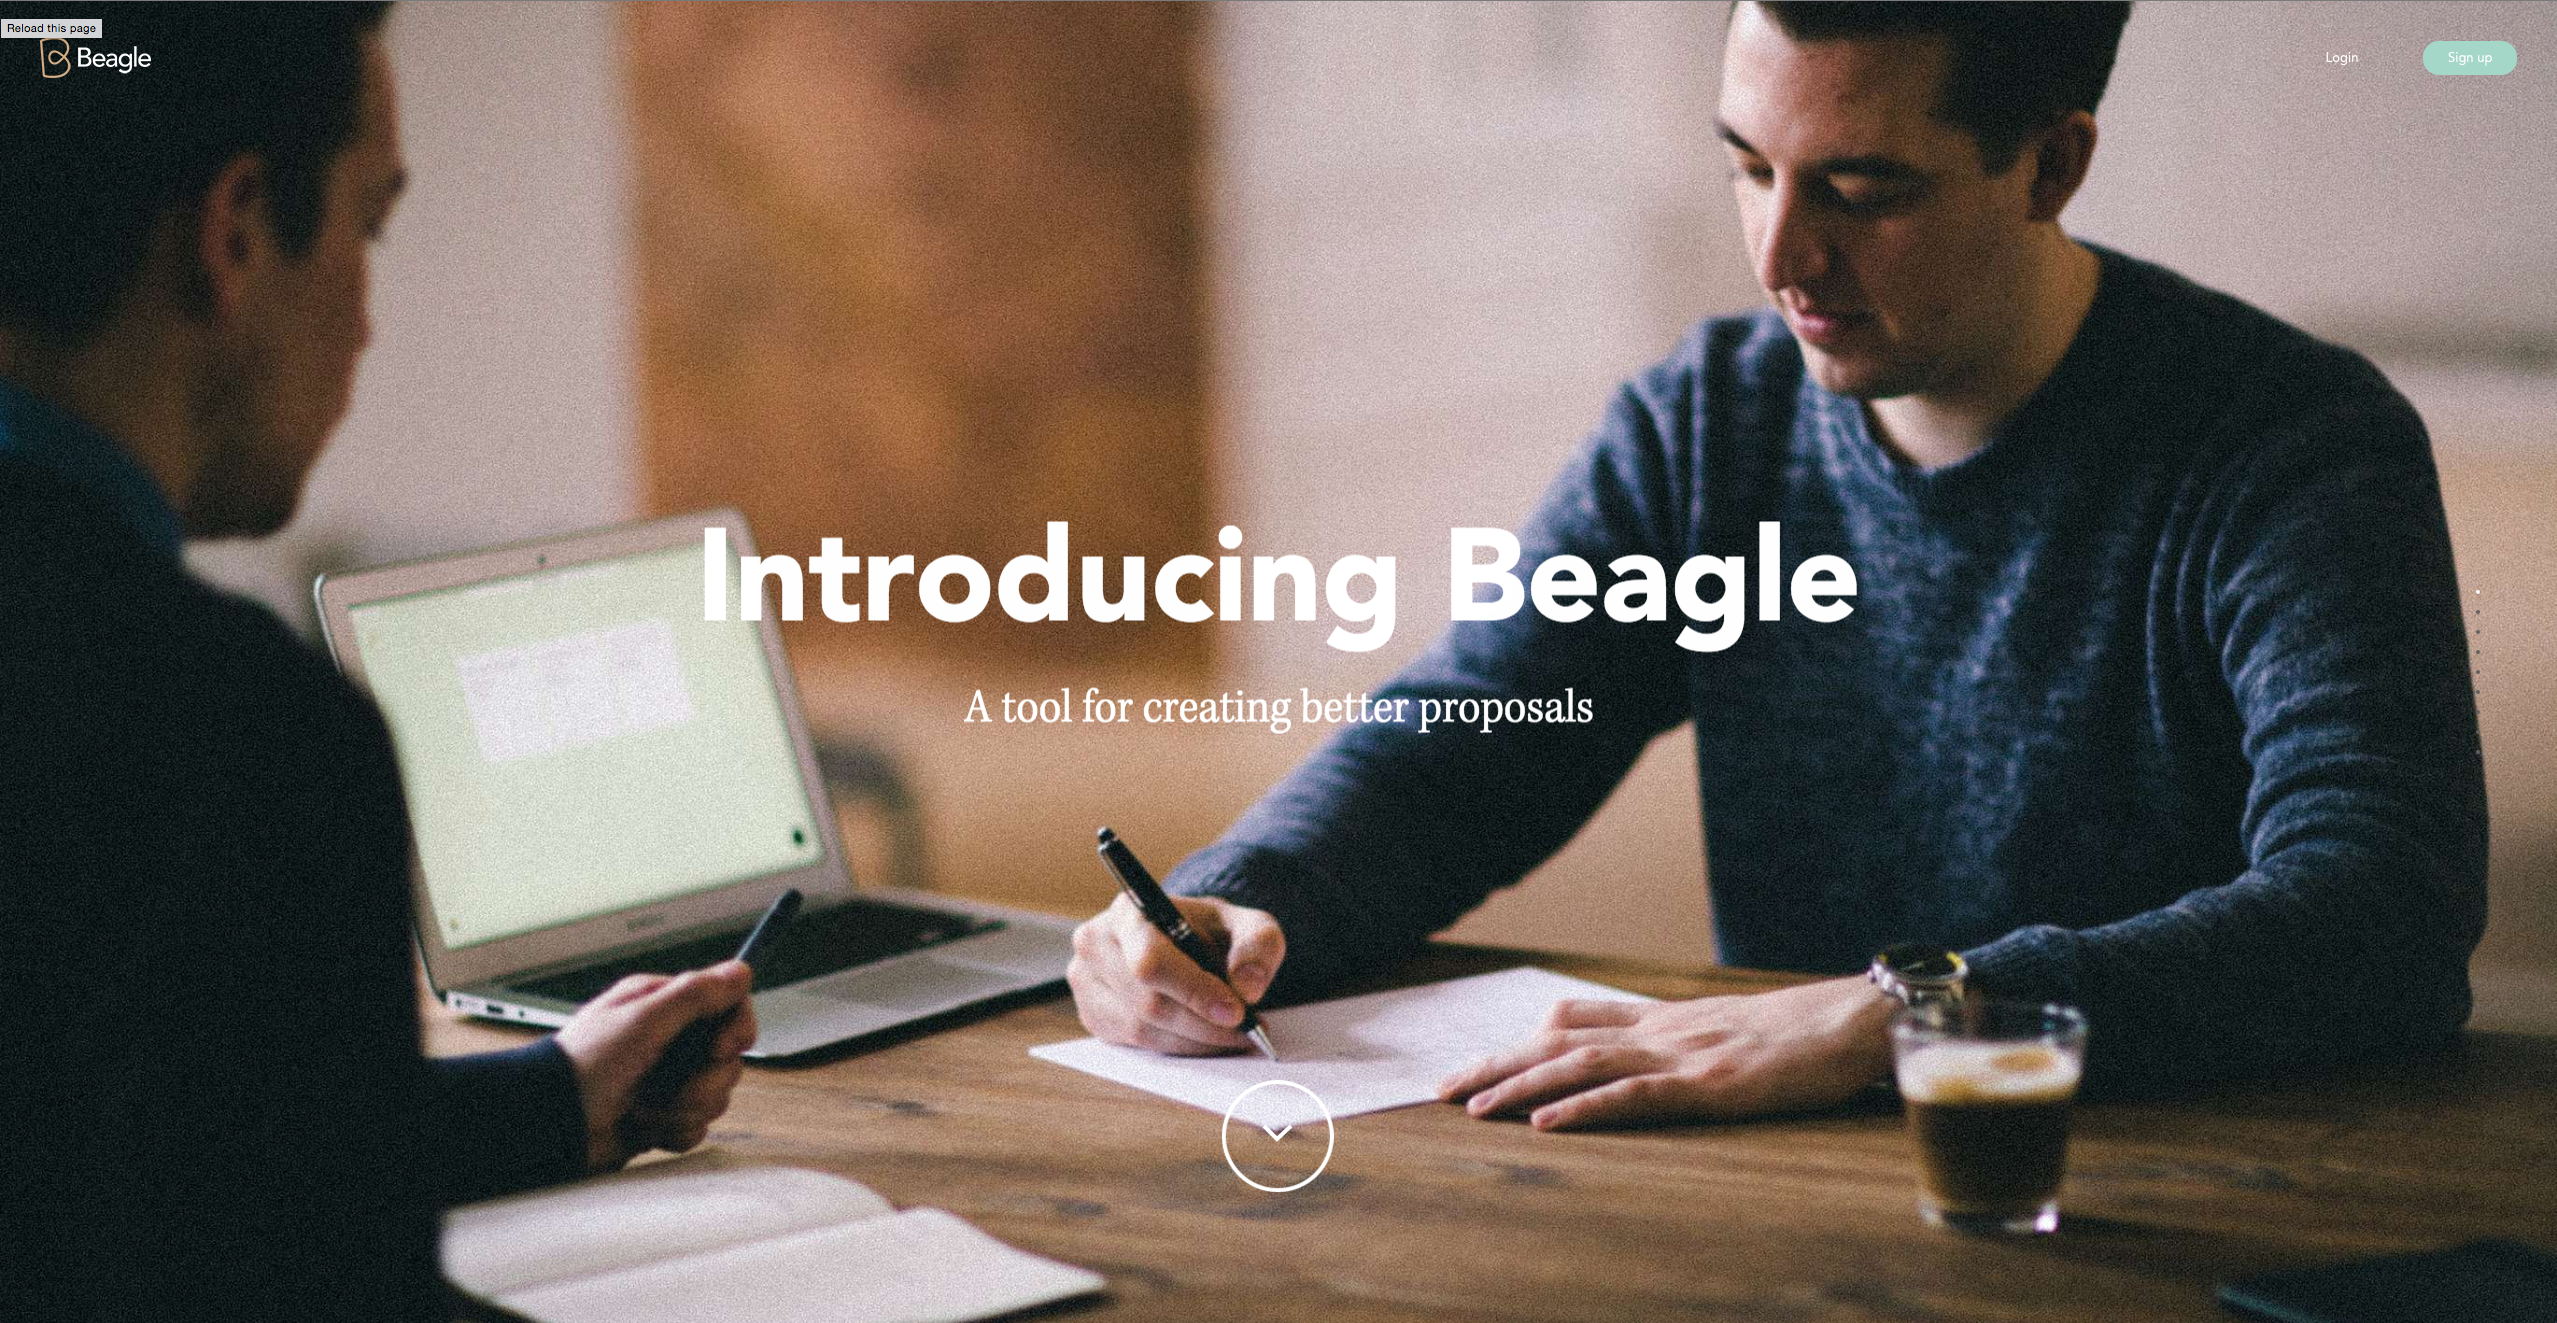 Homepage of Beagle, an award-winning website